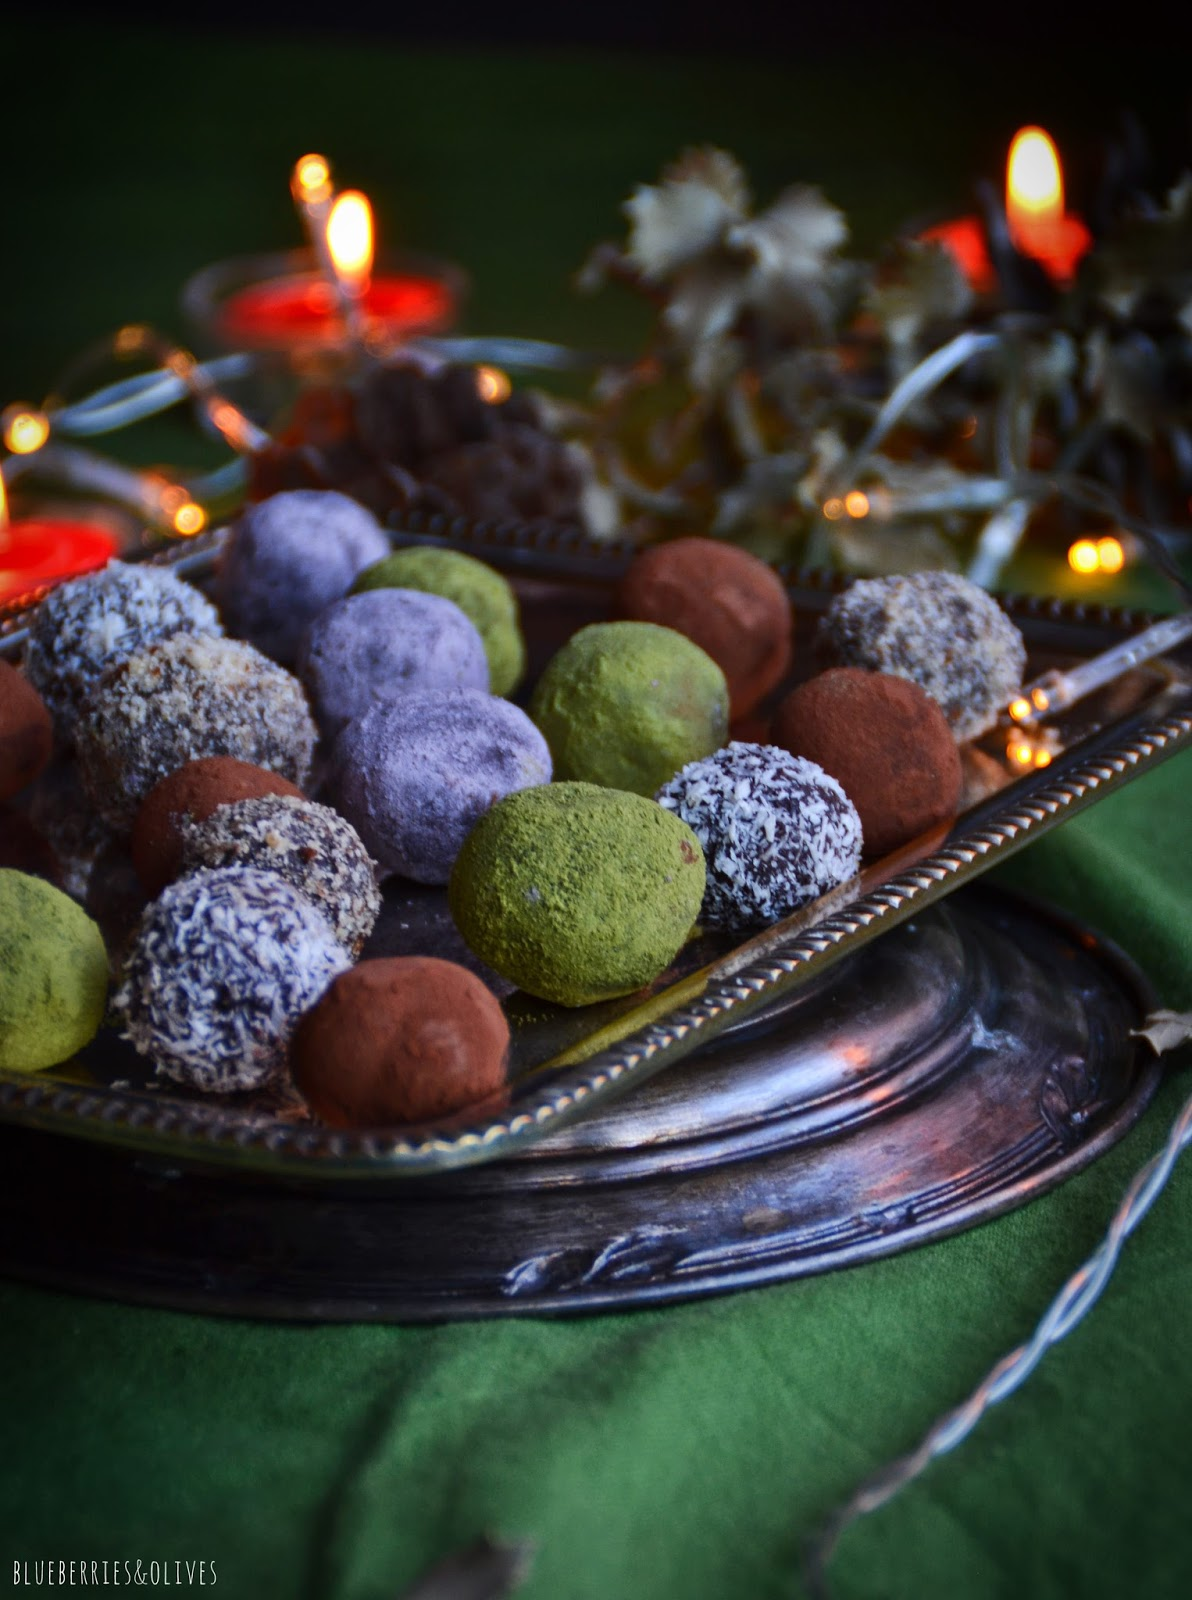 HOMEMADE CHOCOLATE TRUFFLES TO OFFER (GF, DF, VGT)